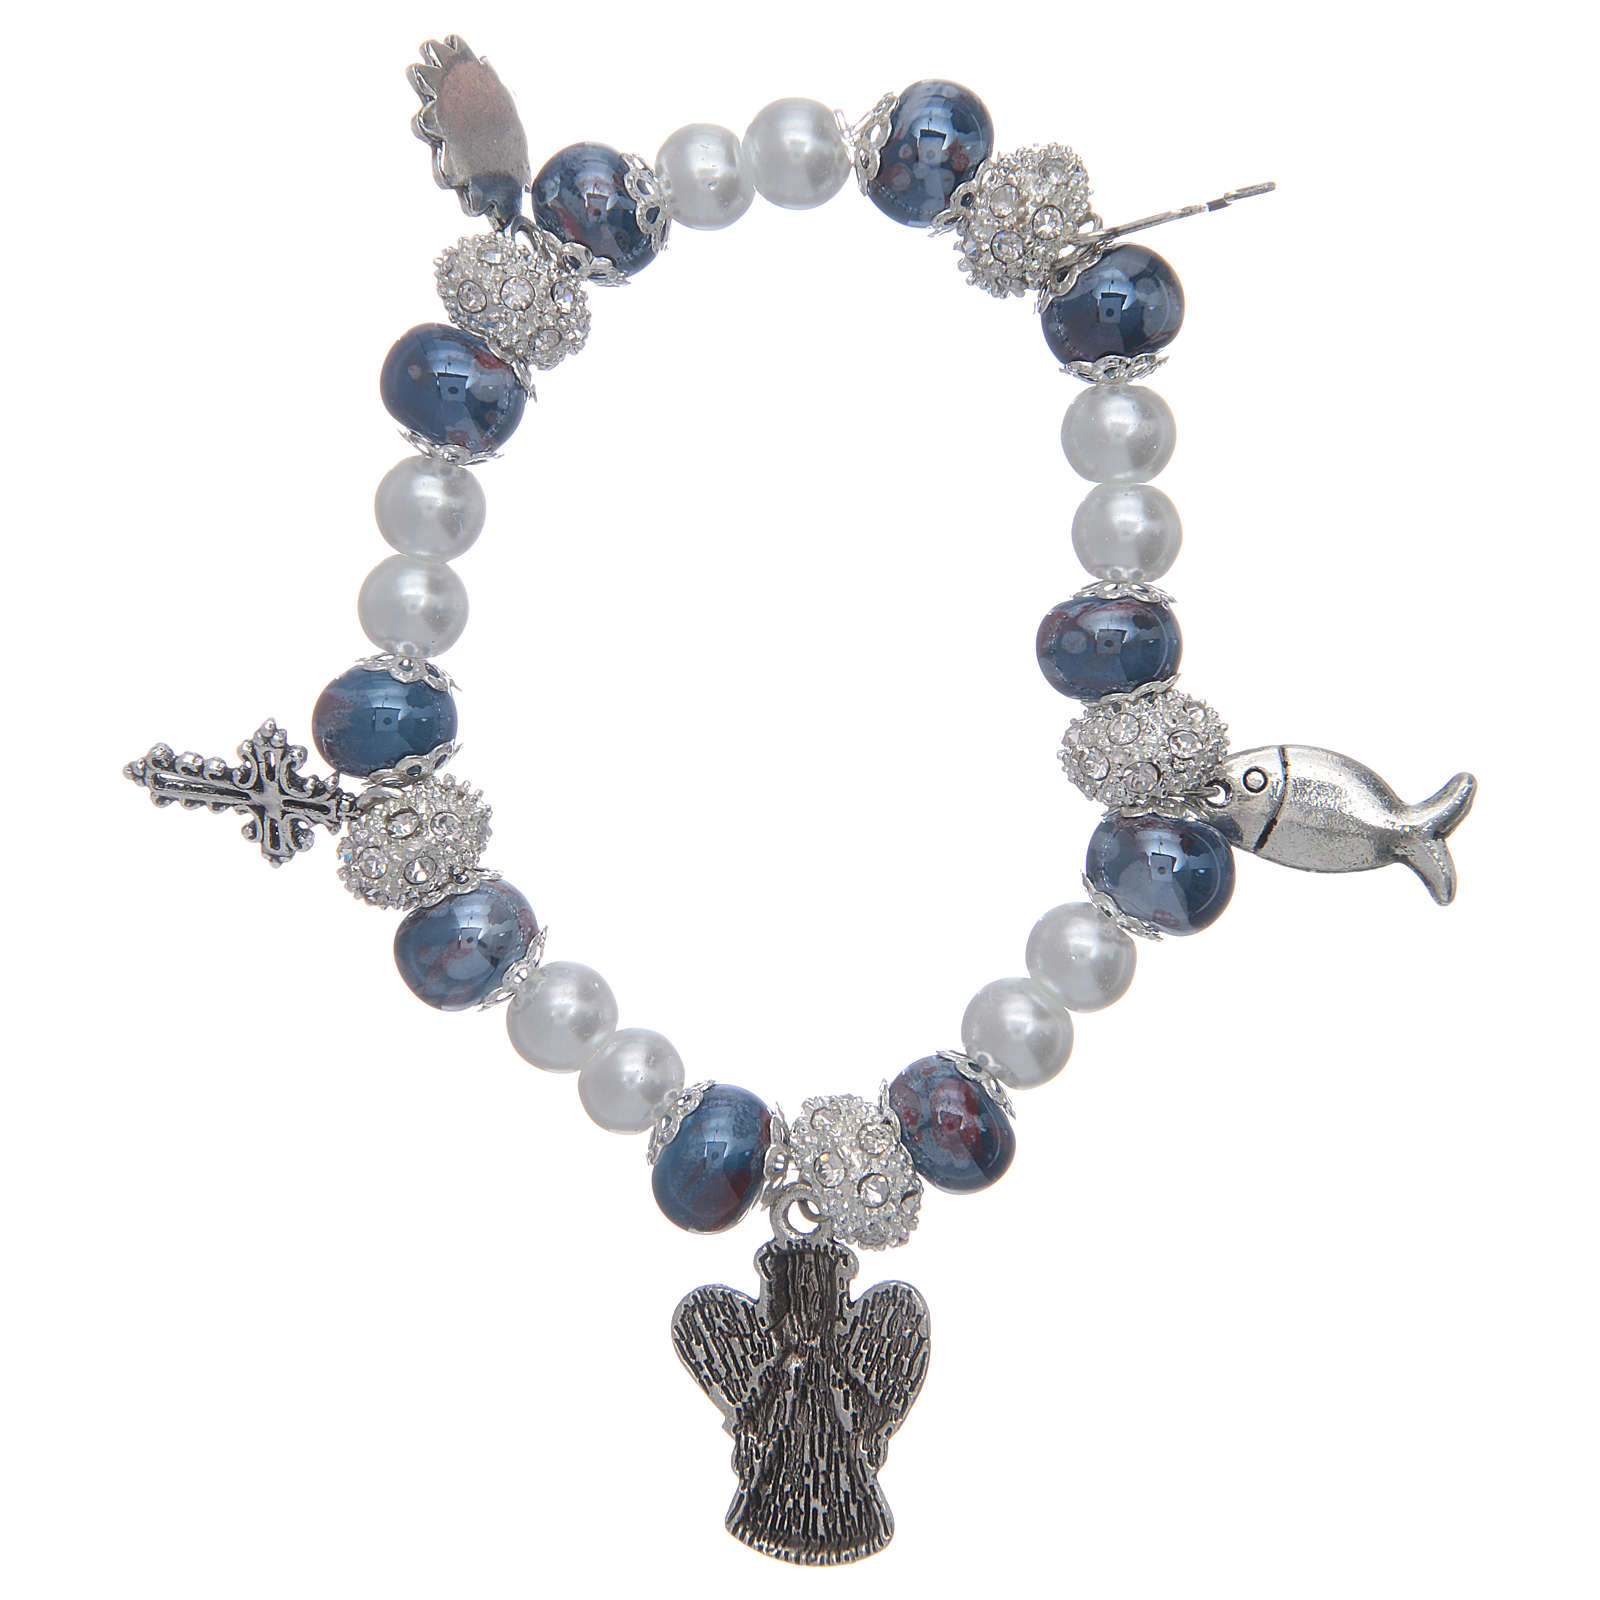 Elastic bracelet with grains decorated in blue and pendants with Christian symbols 4